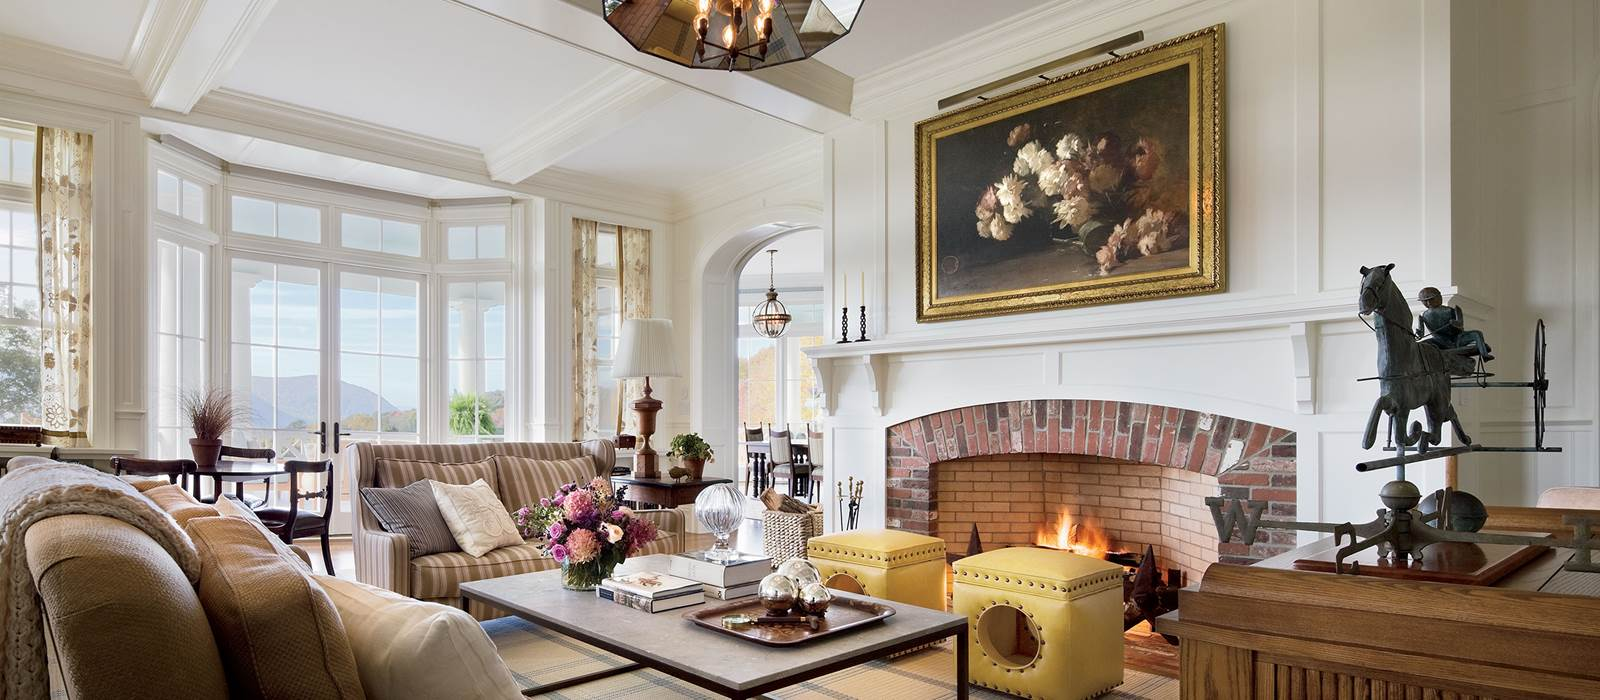 Living Room, Fireplace from Shingle Estate on the Hudson